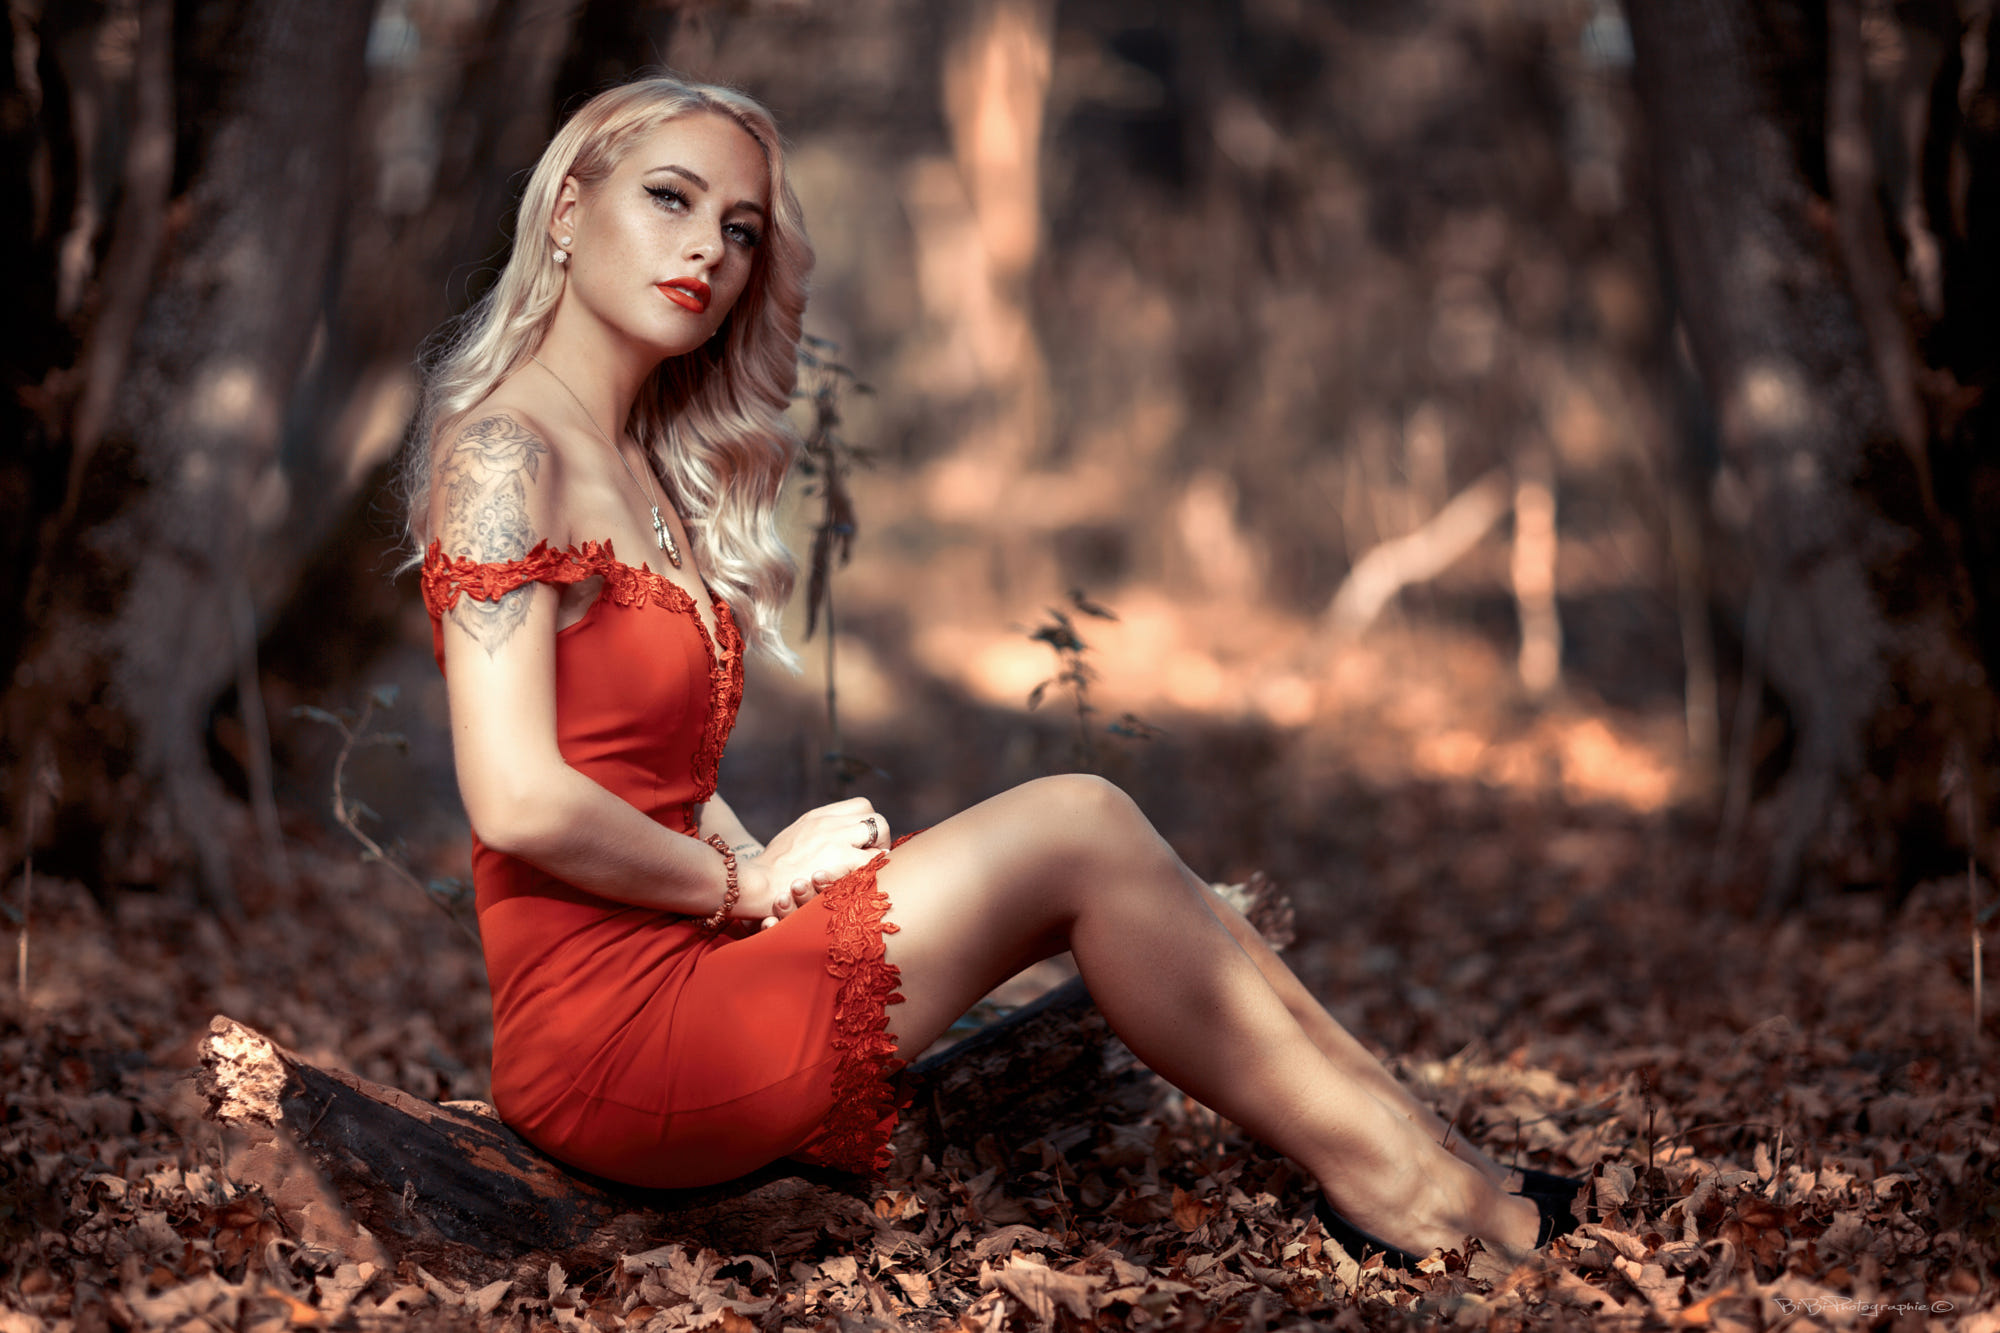 People 2000x1333 women blonde face women outdoors forest sitting dress legs bare shoulders portrait red dress red lipstick freckles tattoo Vincent Haetty